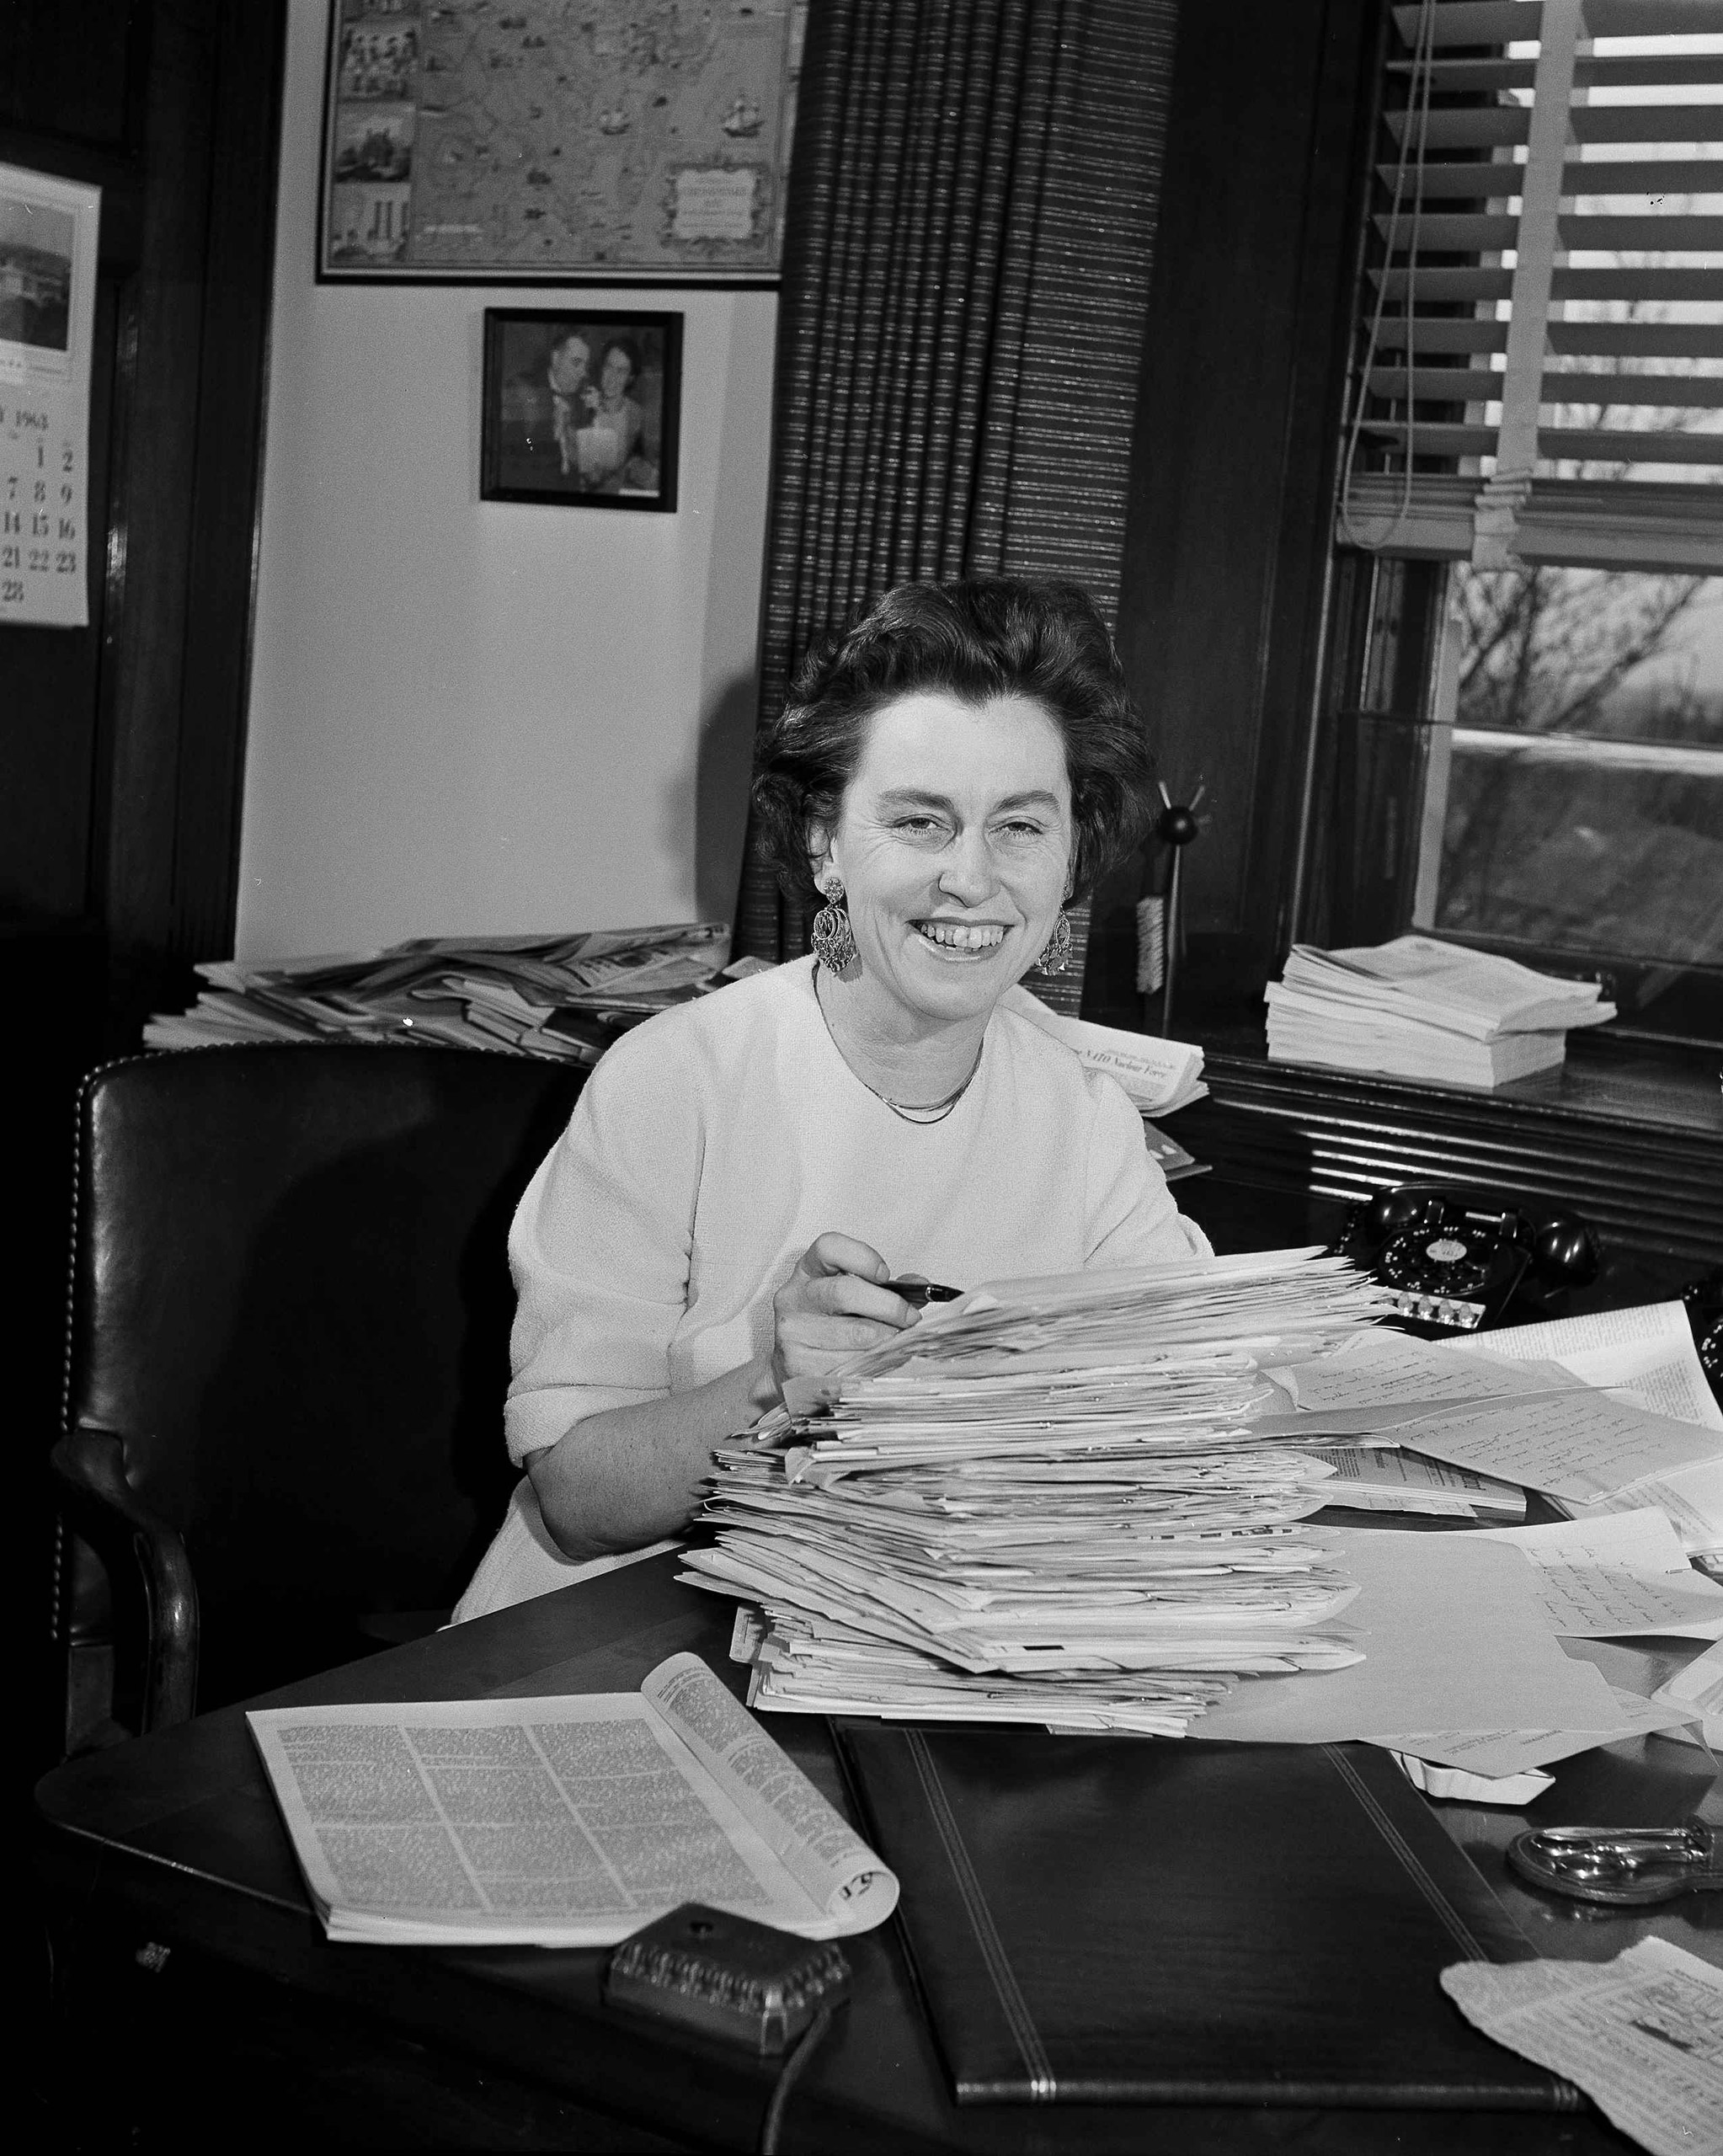 Rep. Martha W. Griffiths (D-Mich.) displays a stack of mail in her Capitol office in Washington, March 3, 1963.